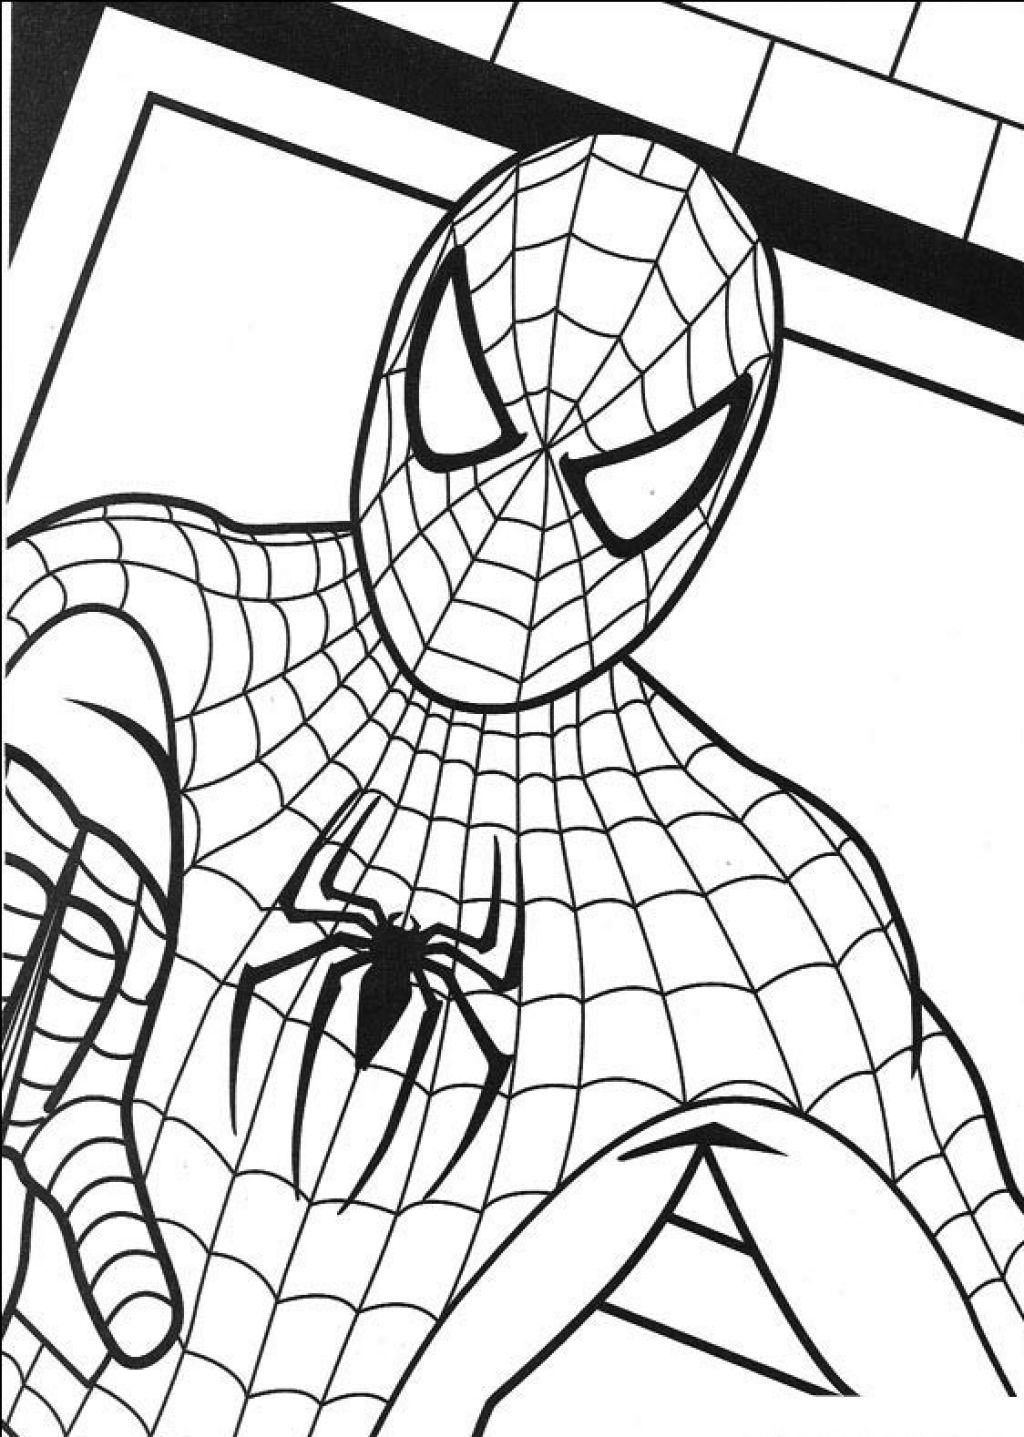 Spiderman coloring pages for kids at getdrawings com free for